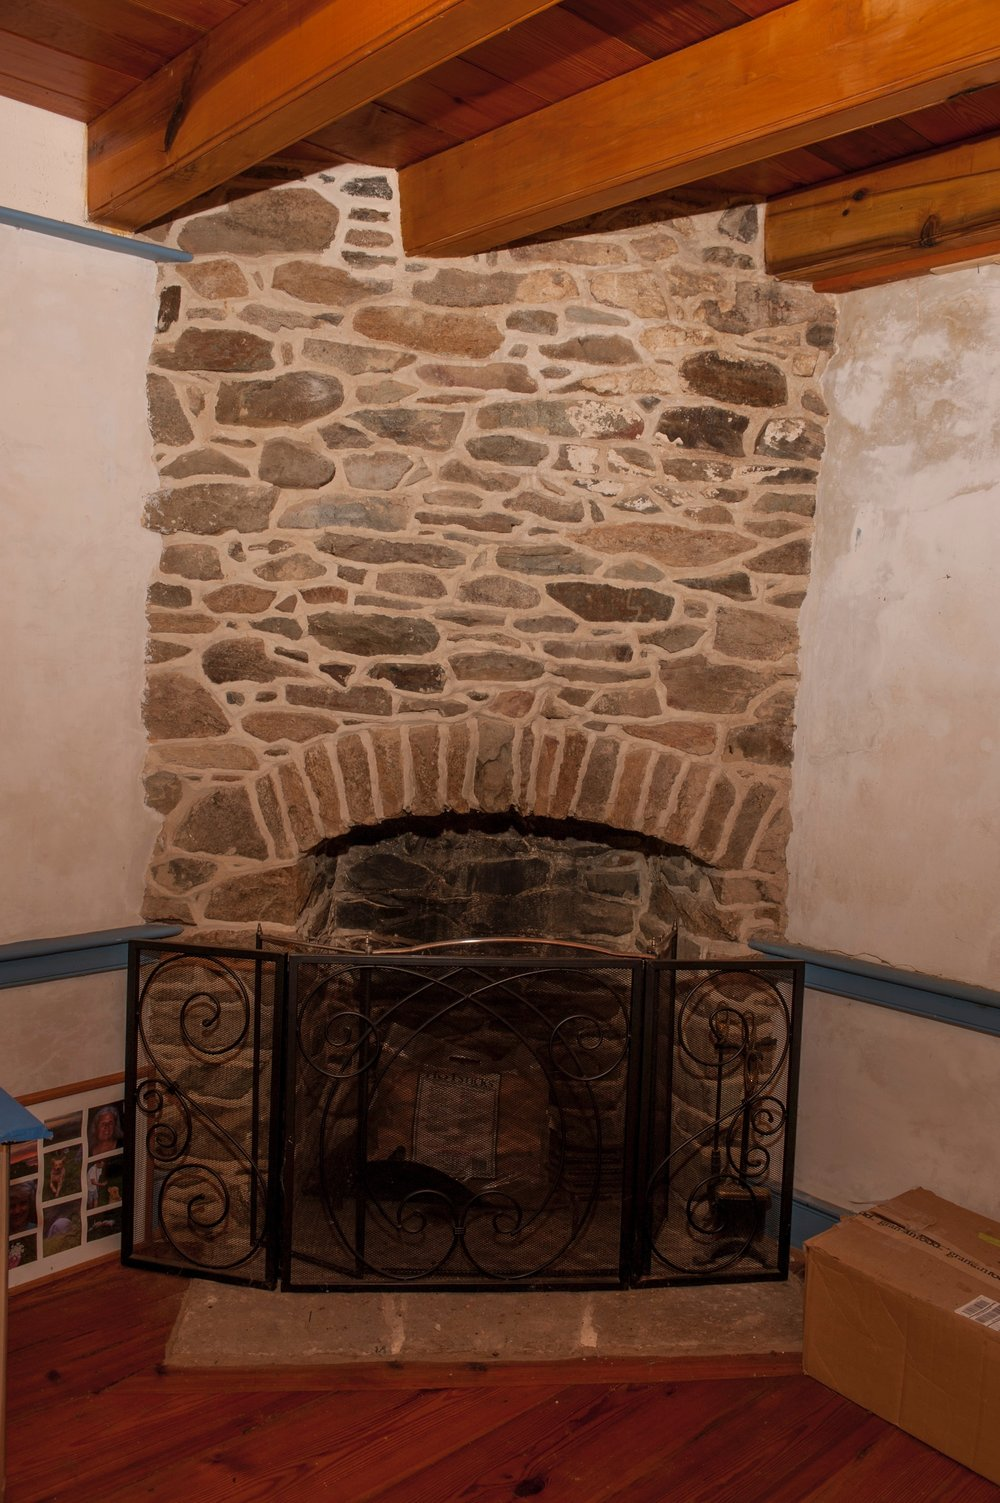 The kitchen fireplace.